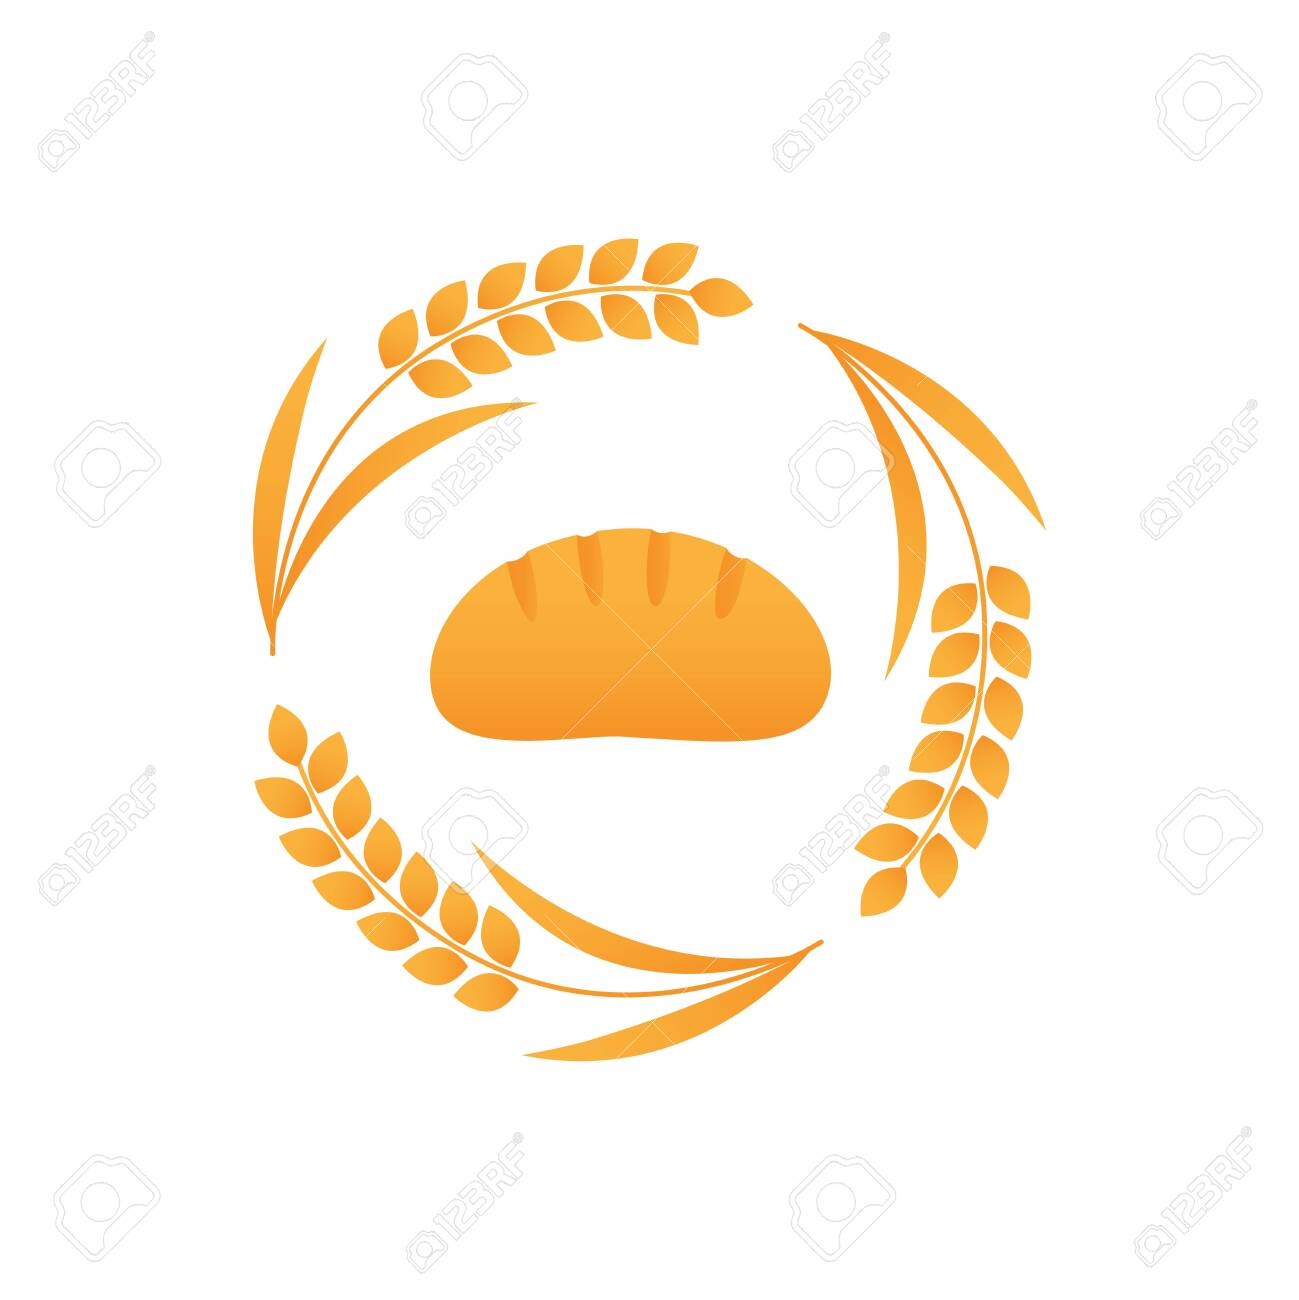 White bread logo vector icon with wheat spike - 143742352